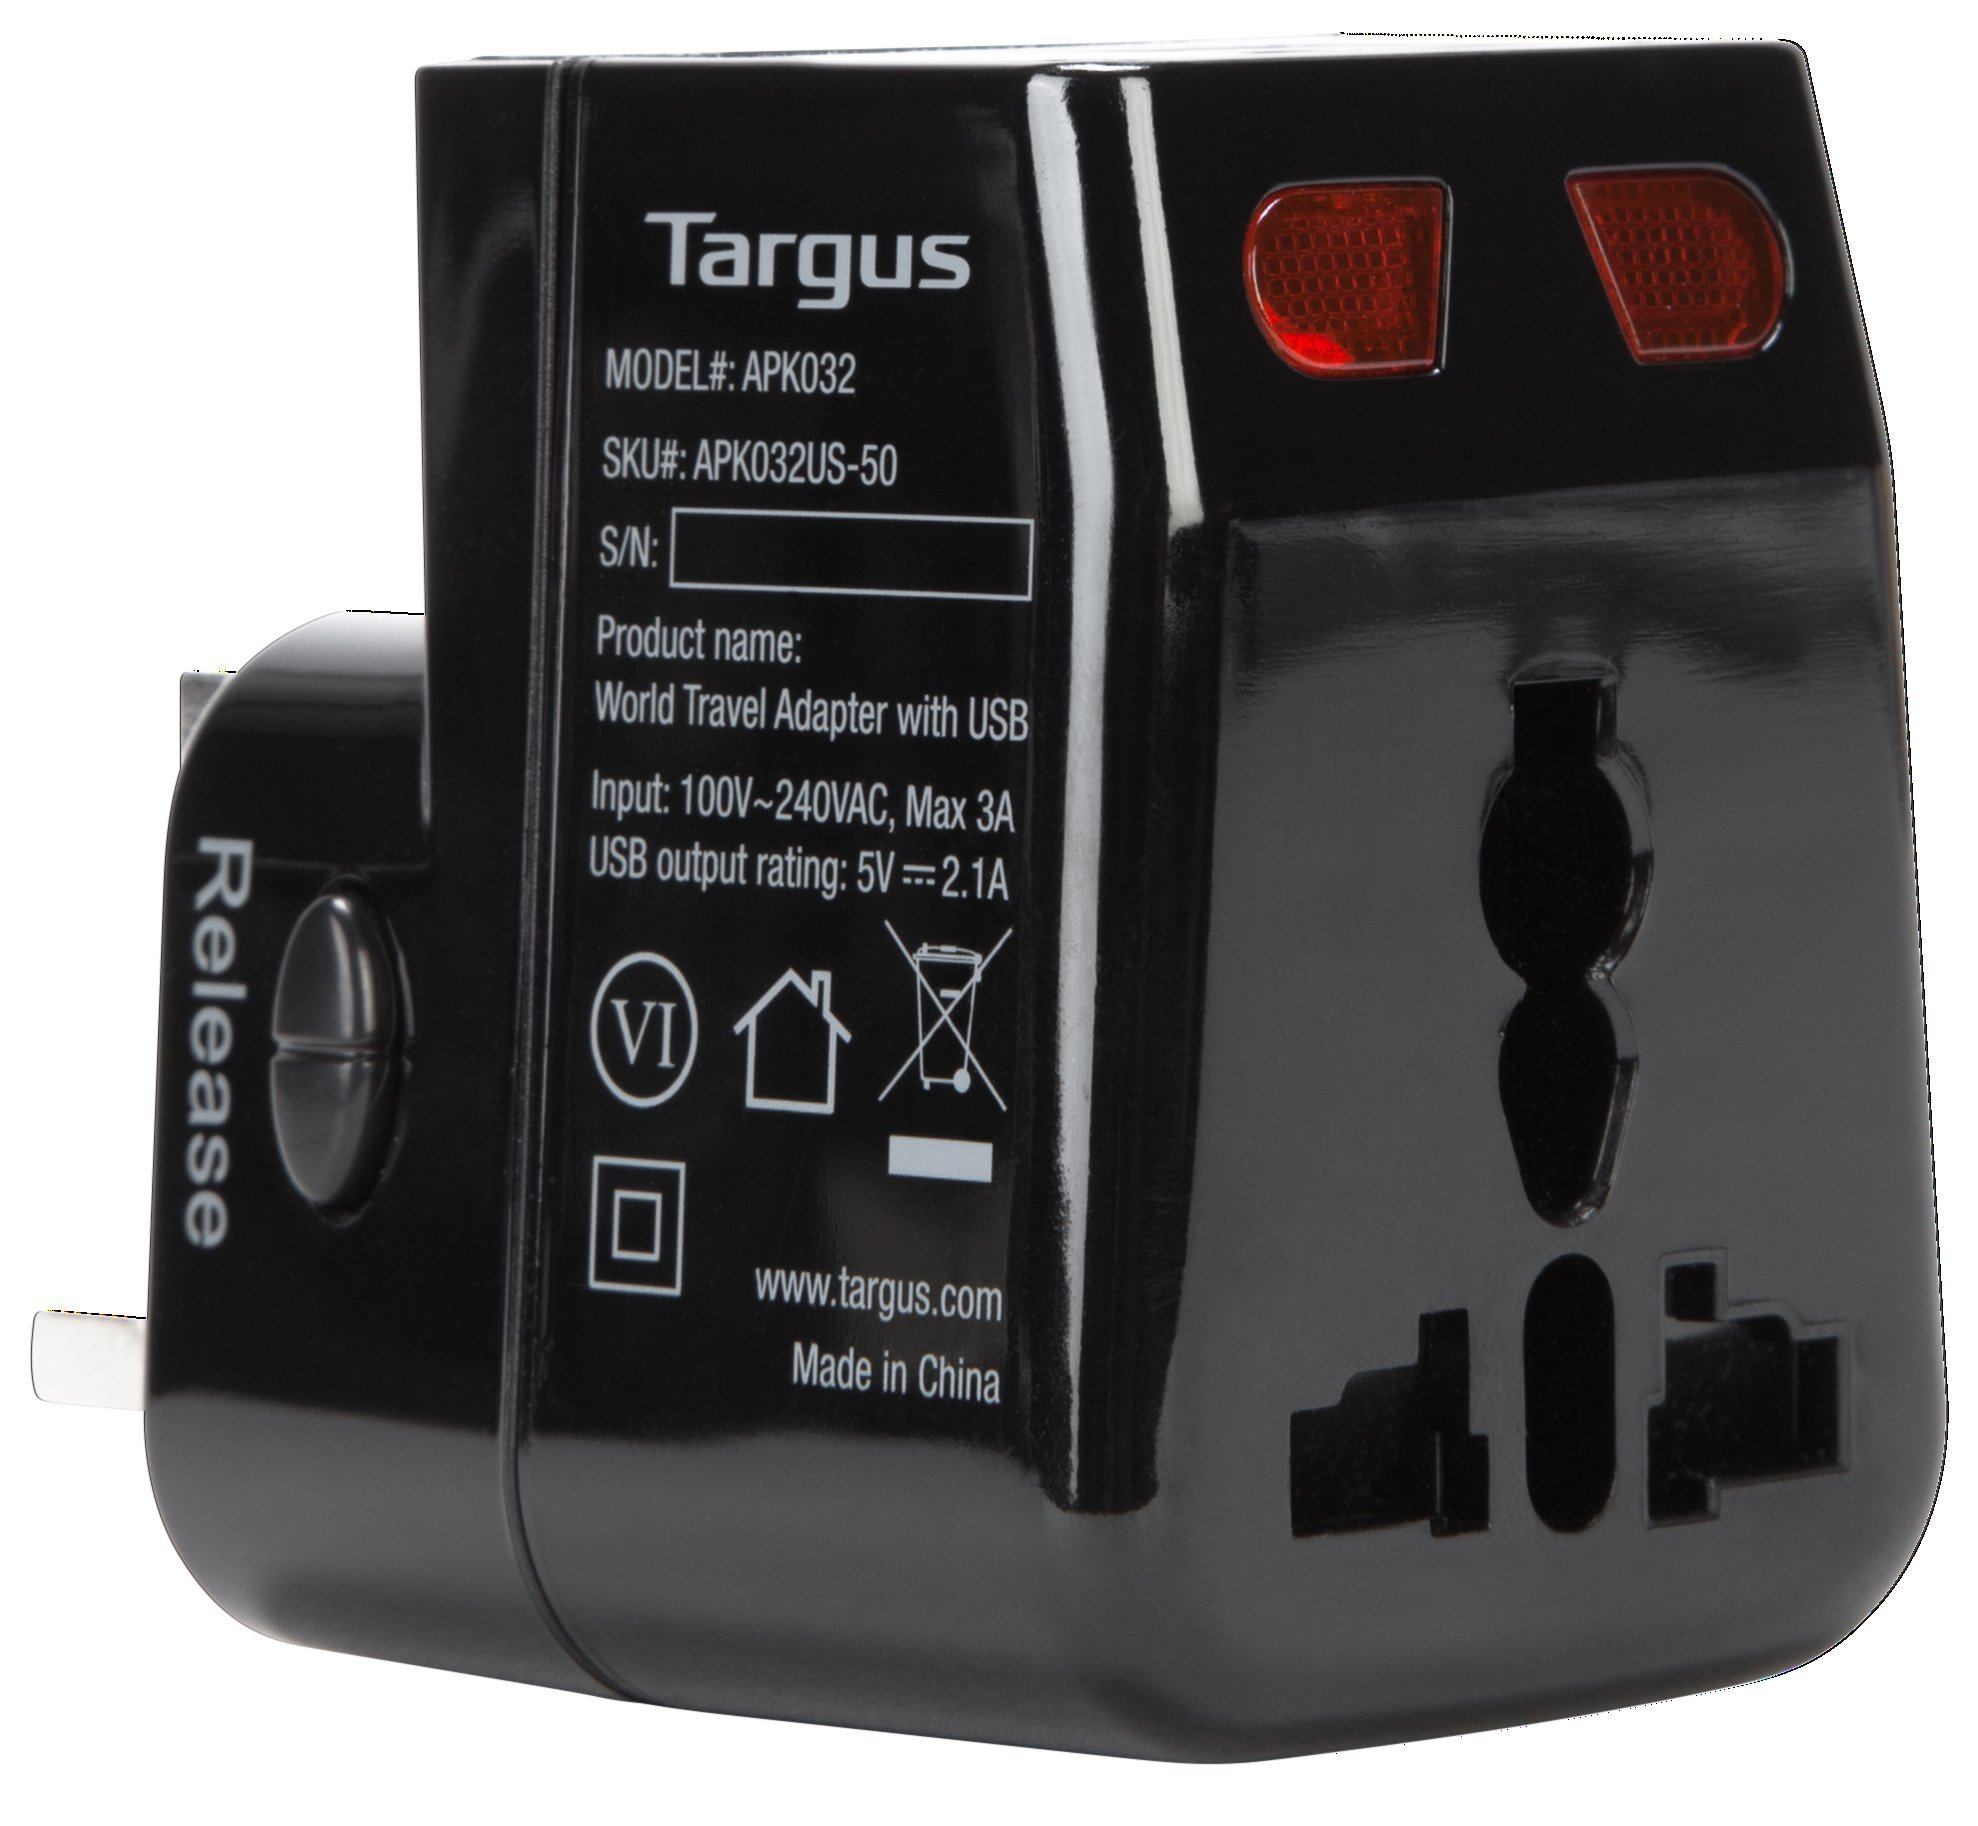 Targus World Travel Power Adapter with Dual USB Charging Ports for Laptops, Phones, Tablets, or Other Mobile Devices (APK032US) by Targus (Image #7)